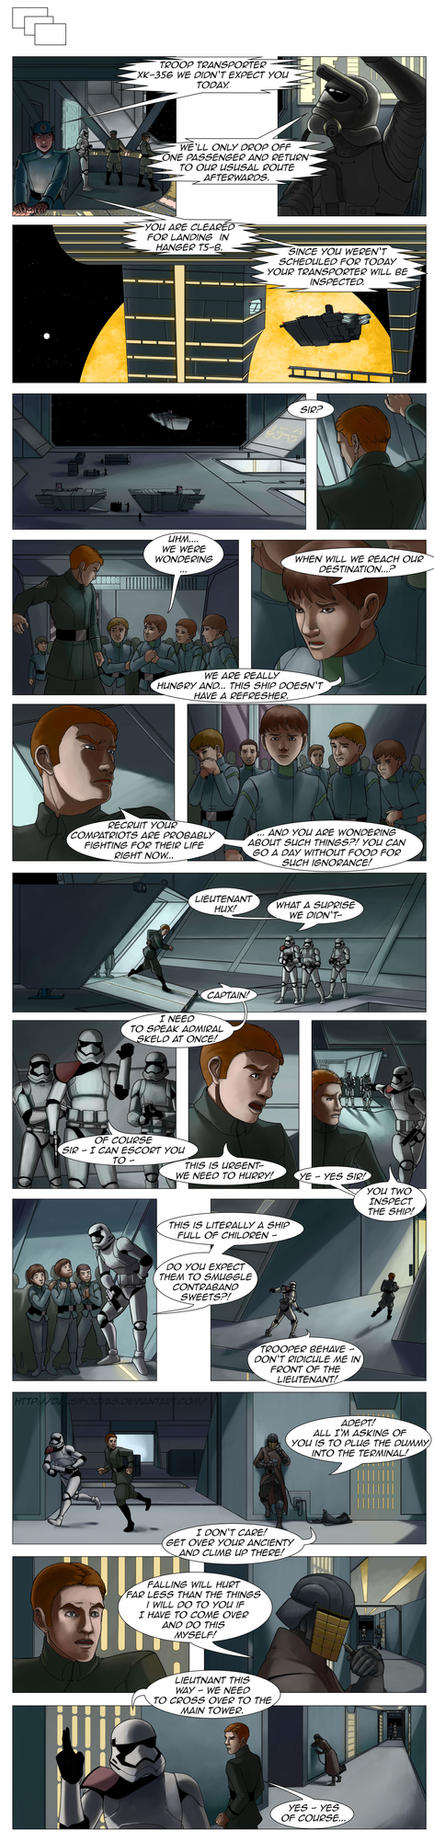 Star Wars - First Order Tales - The Invasion 25 by DalSifoDyas